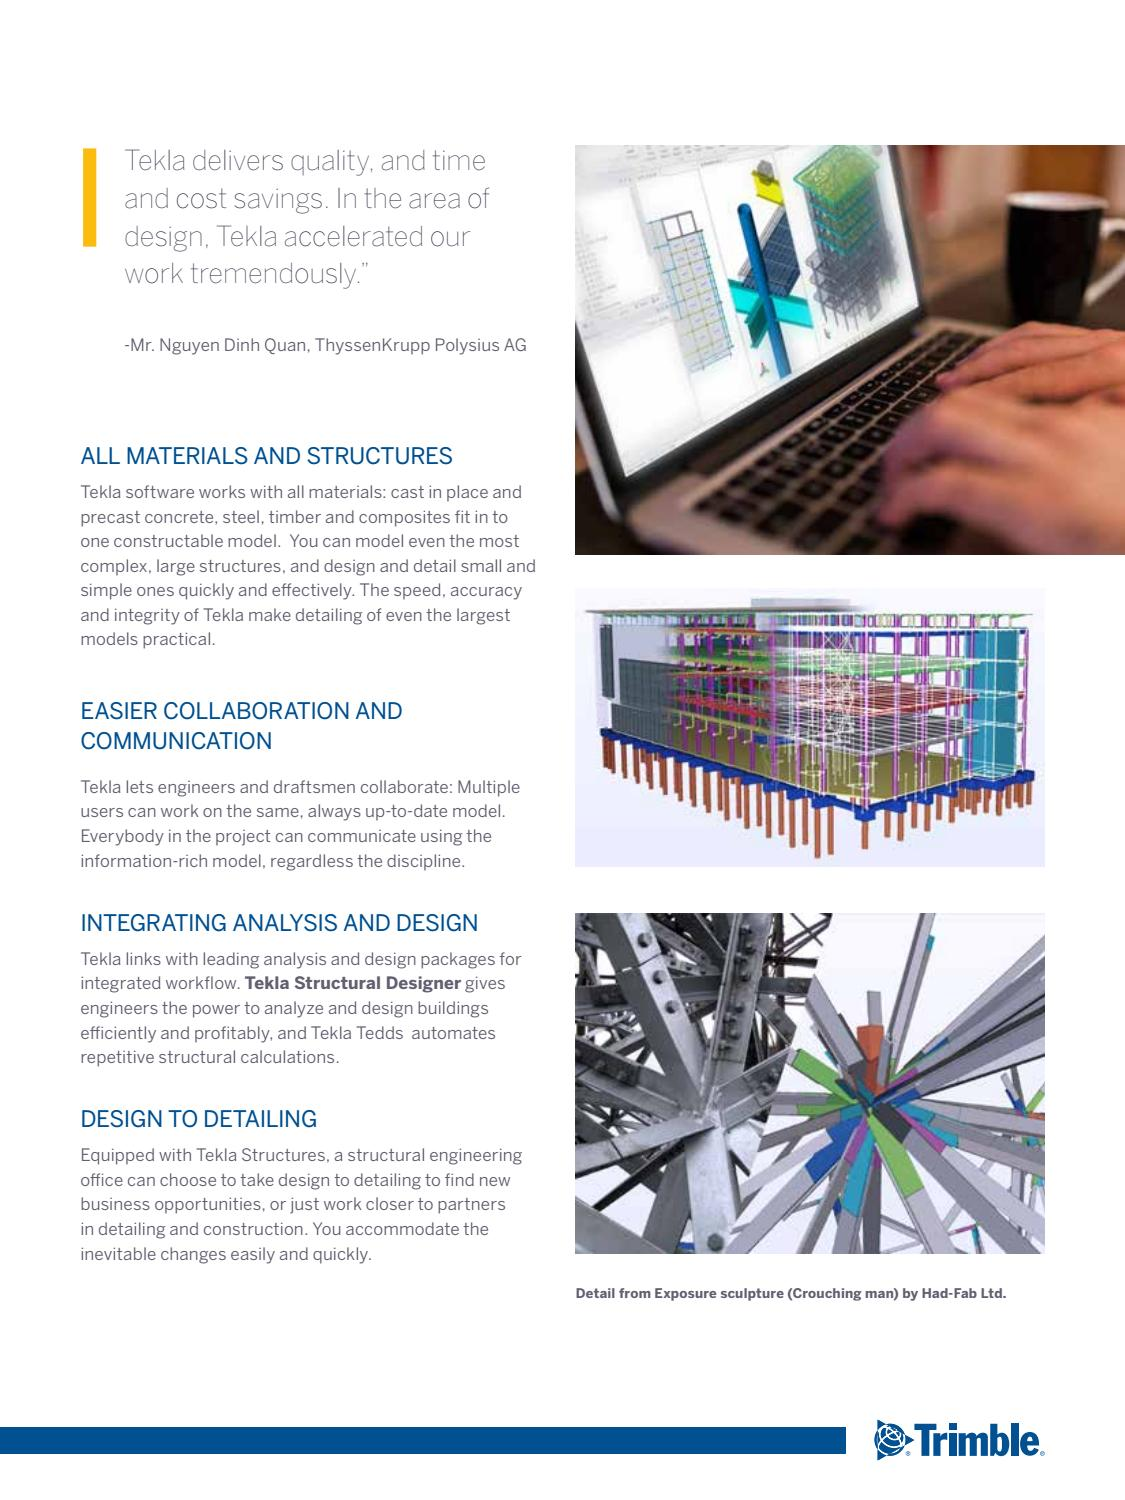 2016 tekla engineering brochure web by Cally Lim - issuu